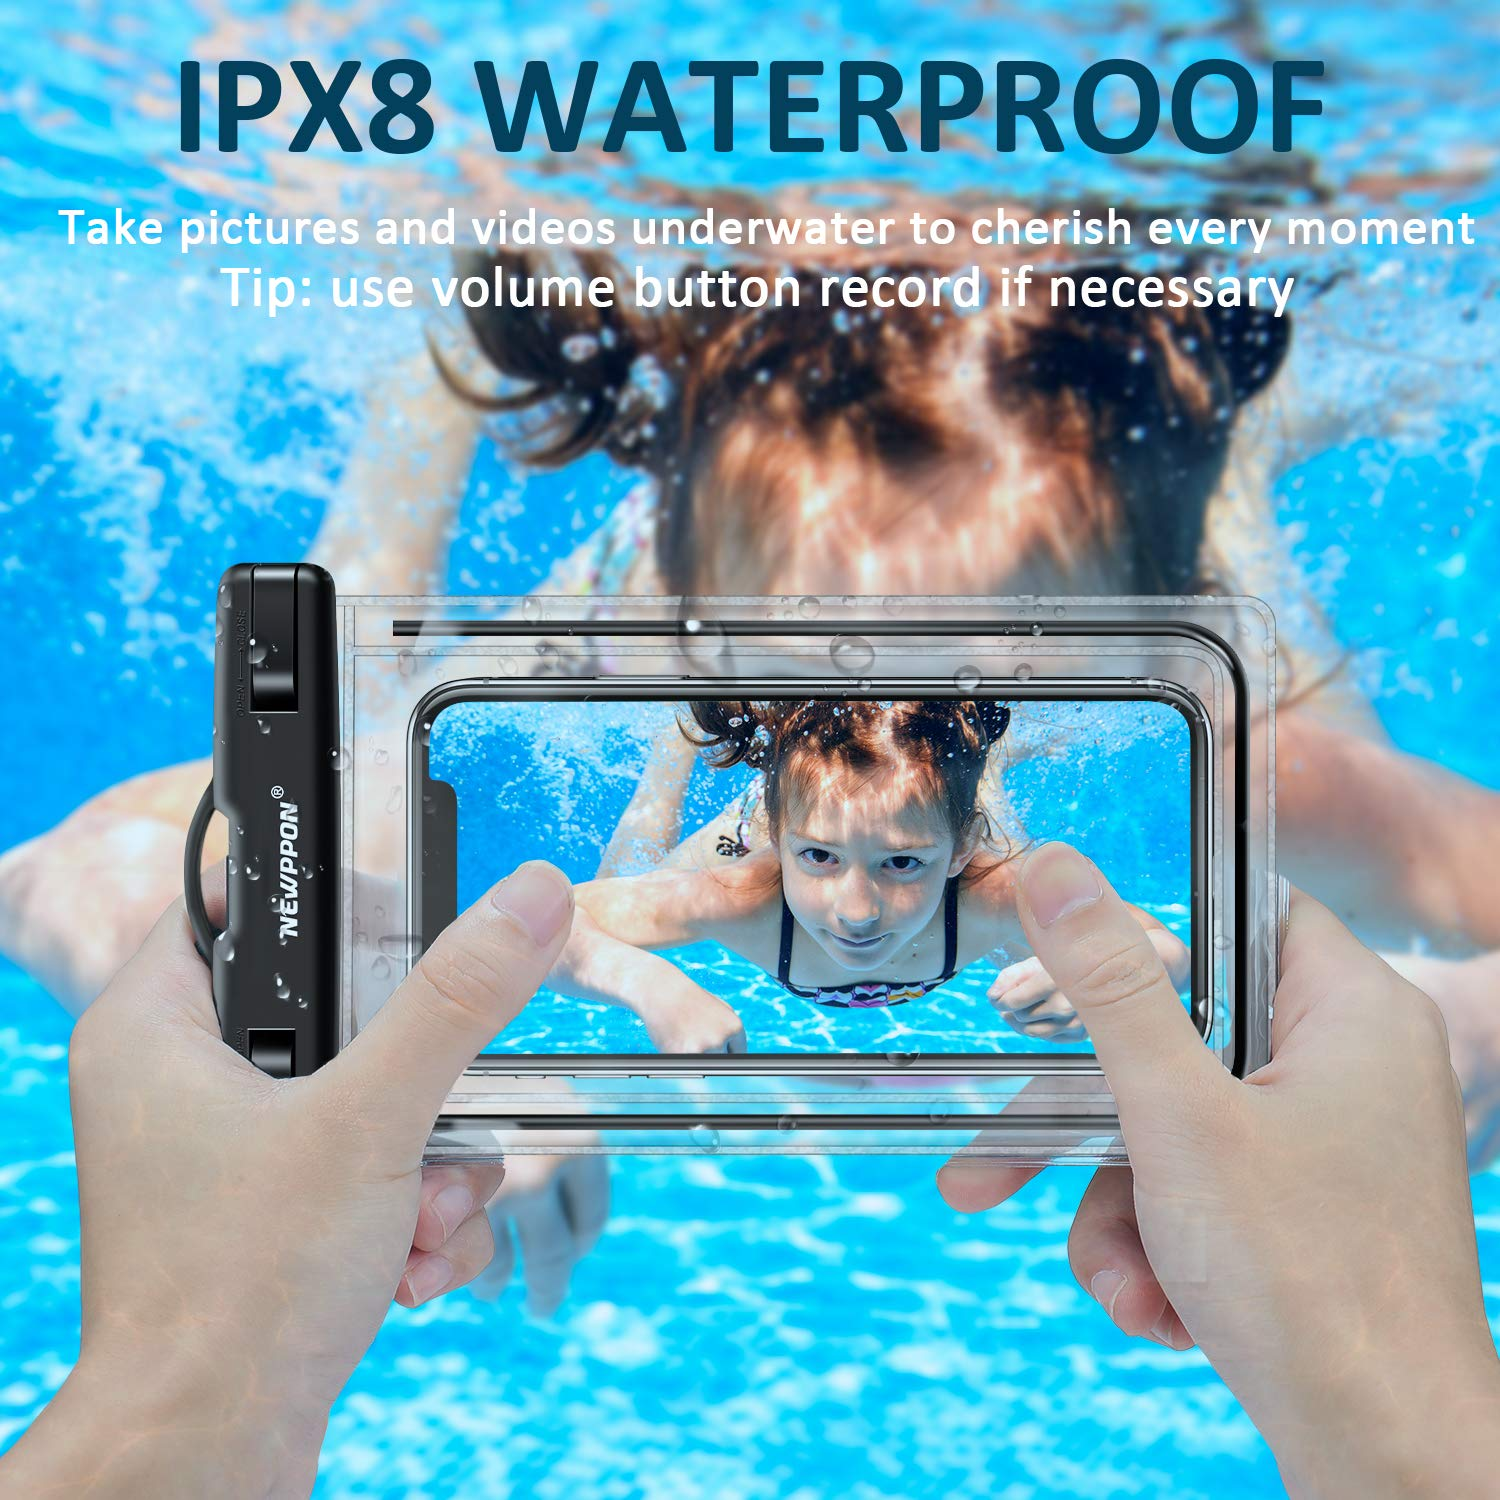 Newppon Waterproof Cell Phone Pouch 2 Pack IPX8 Underwater Wider Dry Bag Universal for iPhone Xs Max XR X 8 7 Plus SE Samsung Galaxy Note Pixel with Thin Case for Beach Snowproof Dustproof